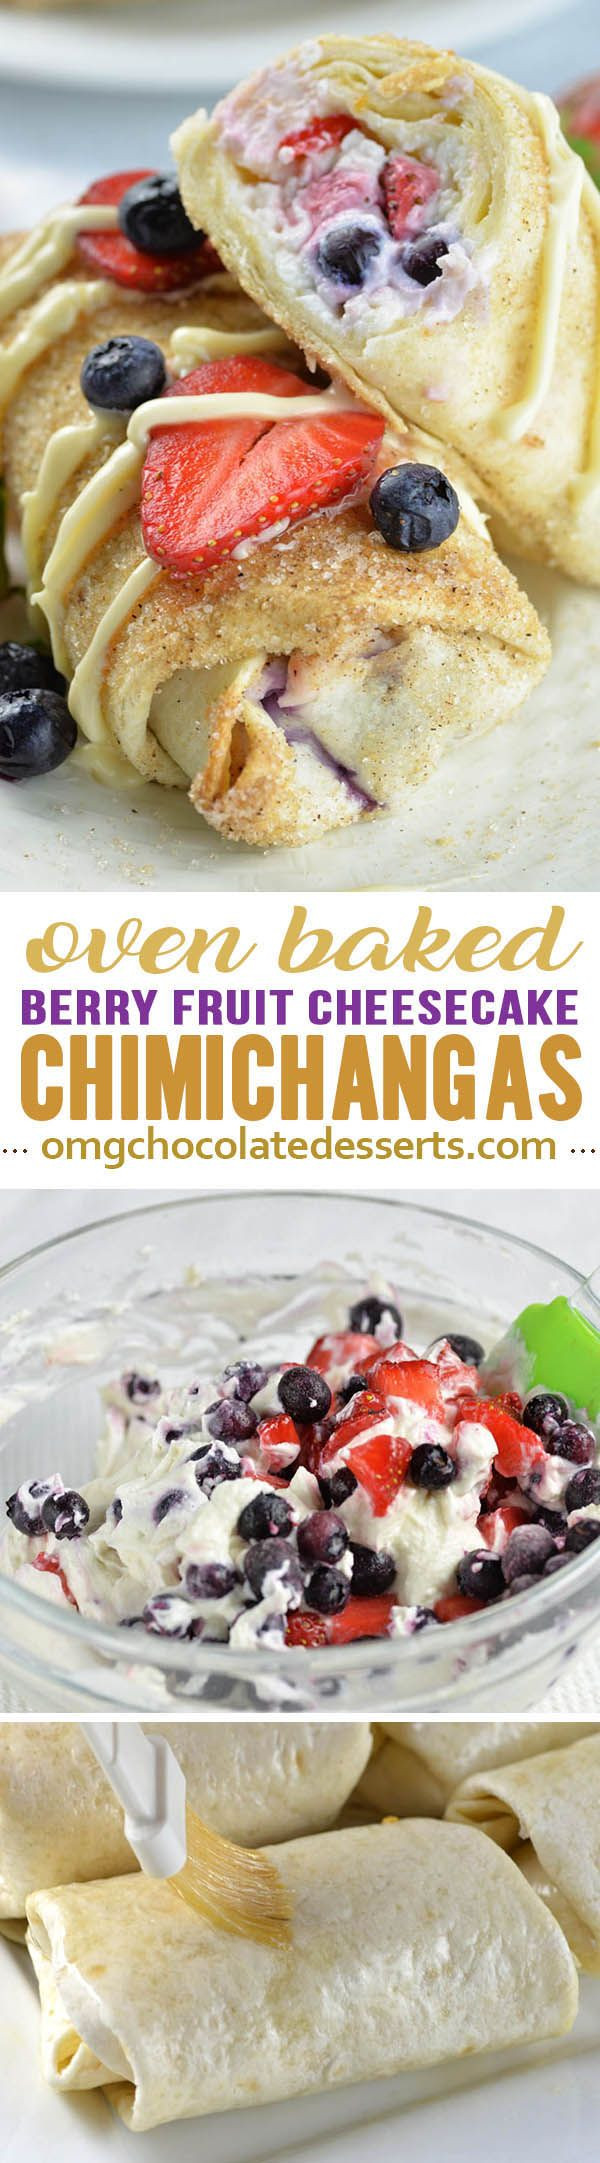 Easy Summer Desserts For A Party  Looking for QUICK and EASY SUMMER DESSERT RECIPE Oven